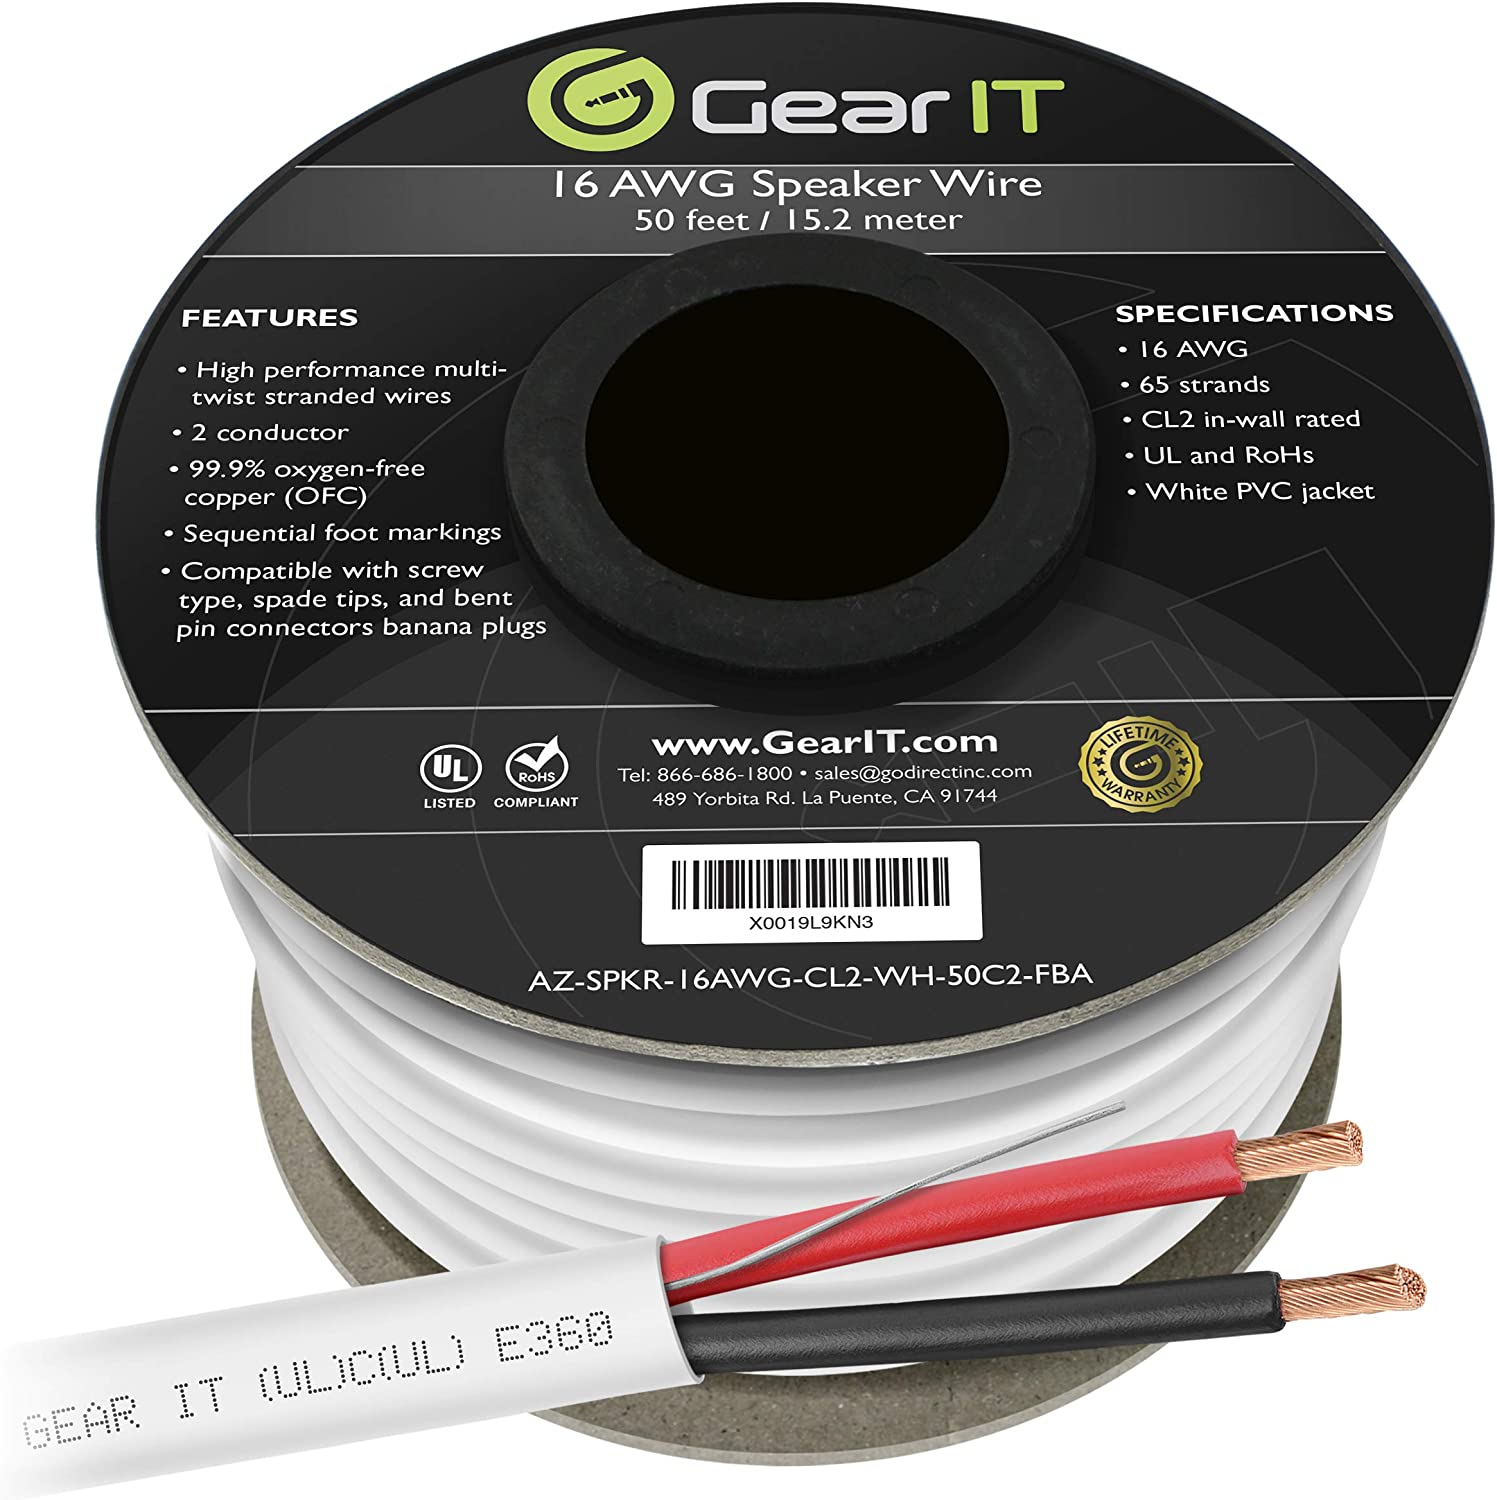 16 AWG CL2 OFC in Wall Speaker Wire, GearIT Pro Series 16 AWG Gauge (50 Feet / 15.24 Meters/White) OFC Oxygen Free Copper UL CL2 Rated in-Wall Speaker Wire Cable for Home Theater and Car Audio